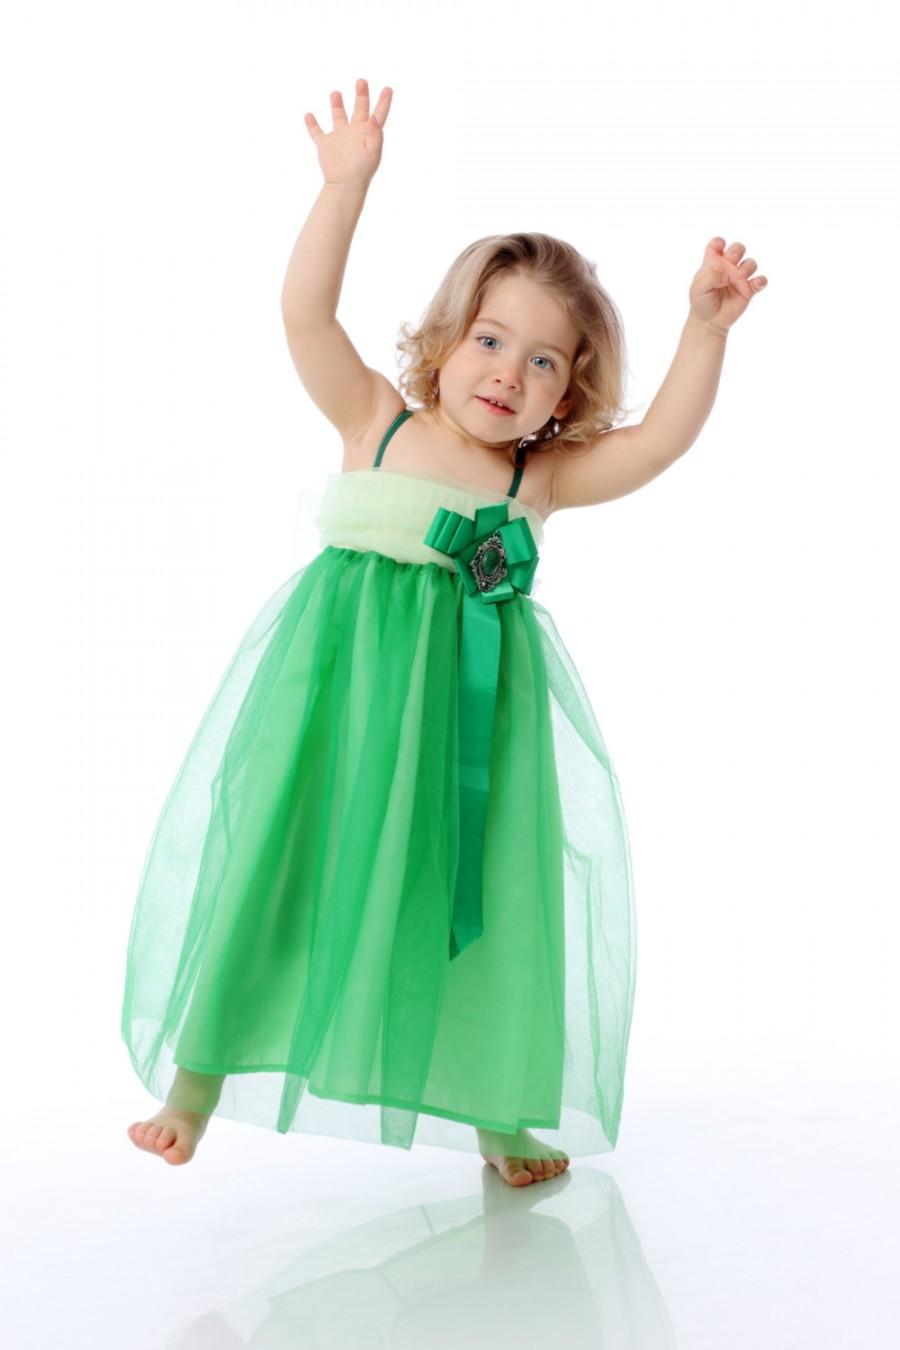 Boda - Green Girl dress, Ariel Dress, Kid Dress, Toddler Dress, Tutu Dress, Fairy Dress, Girl Dress, Princess Dress, Girl Gown, Birthday Dress